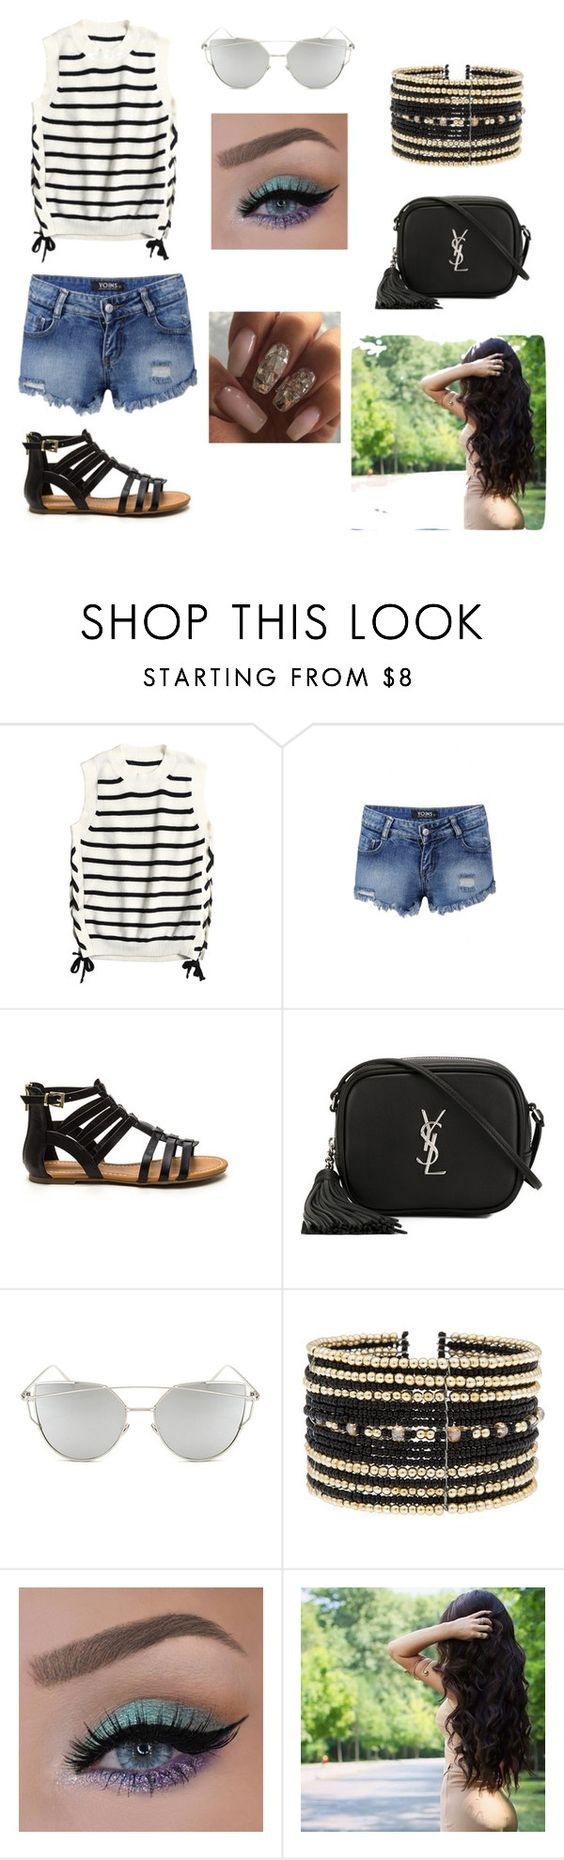 """""""Untitled #37"""" by alyssacreasy ❤ liked on Polyvore featuring Yves Saint Laurent, Chicnova Fashion and Eloquii"""